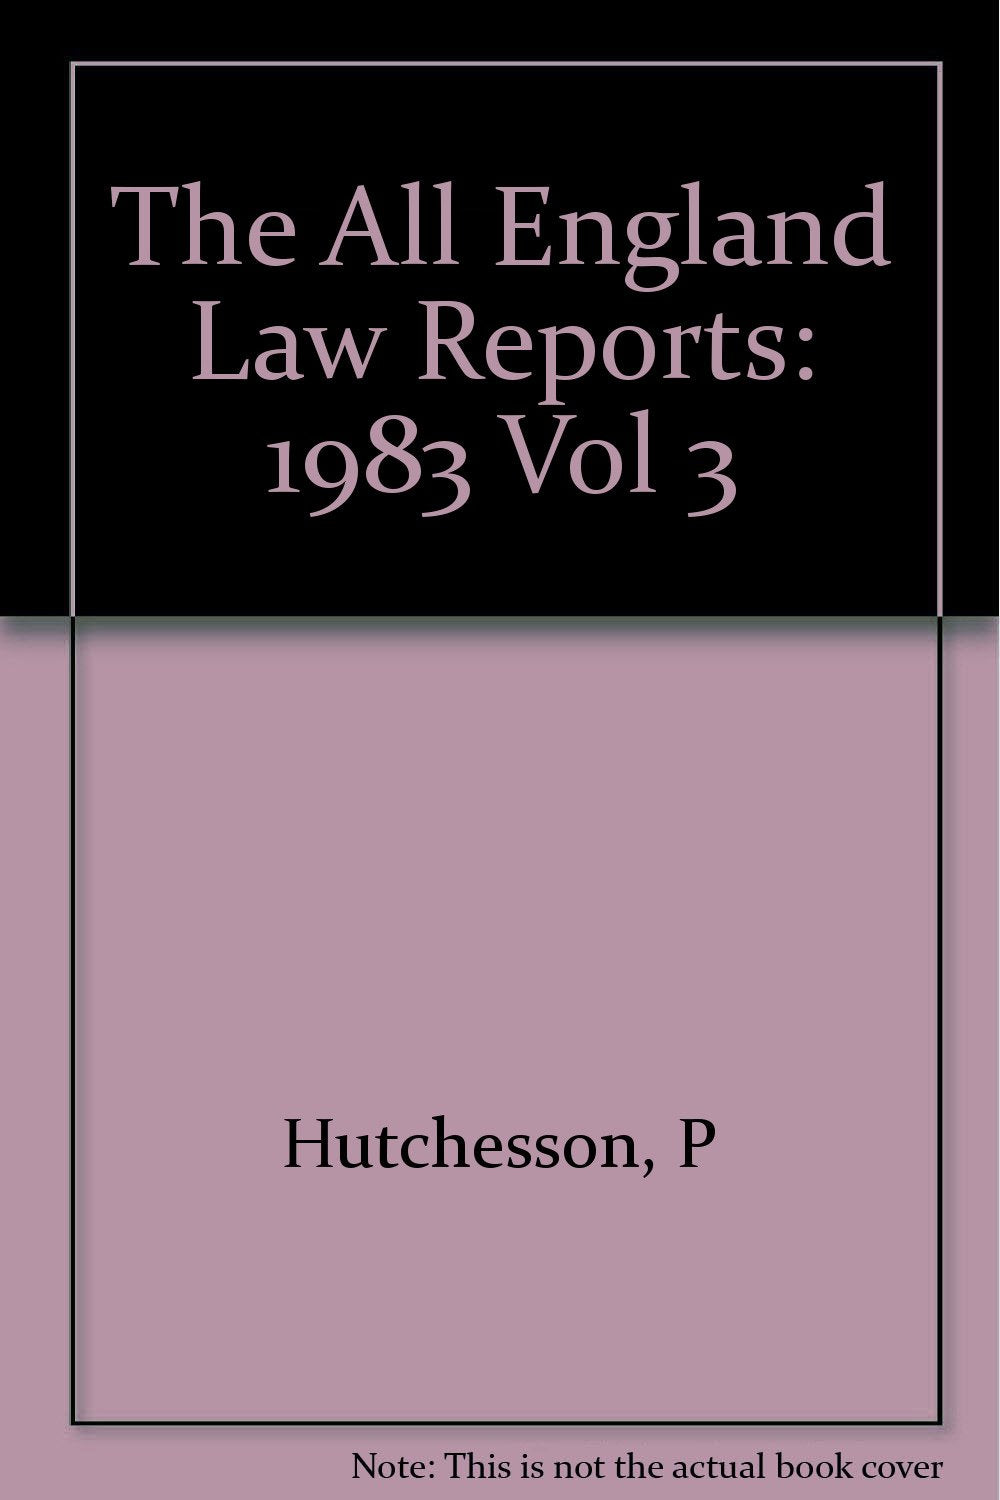 The All England Law Reports: 1983 Vol 3